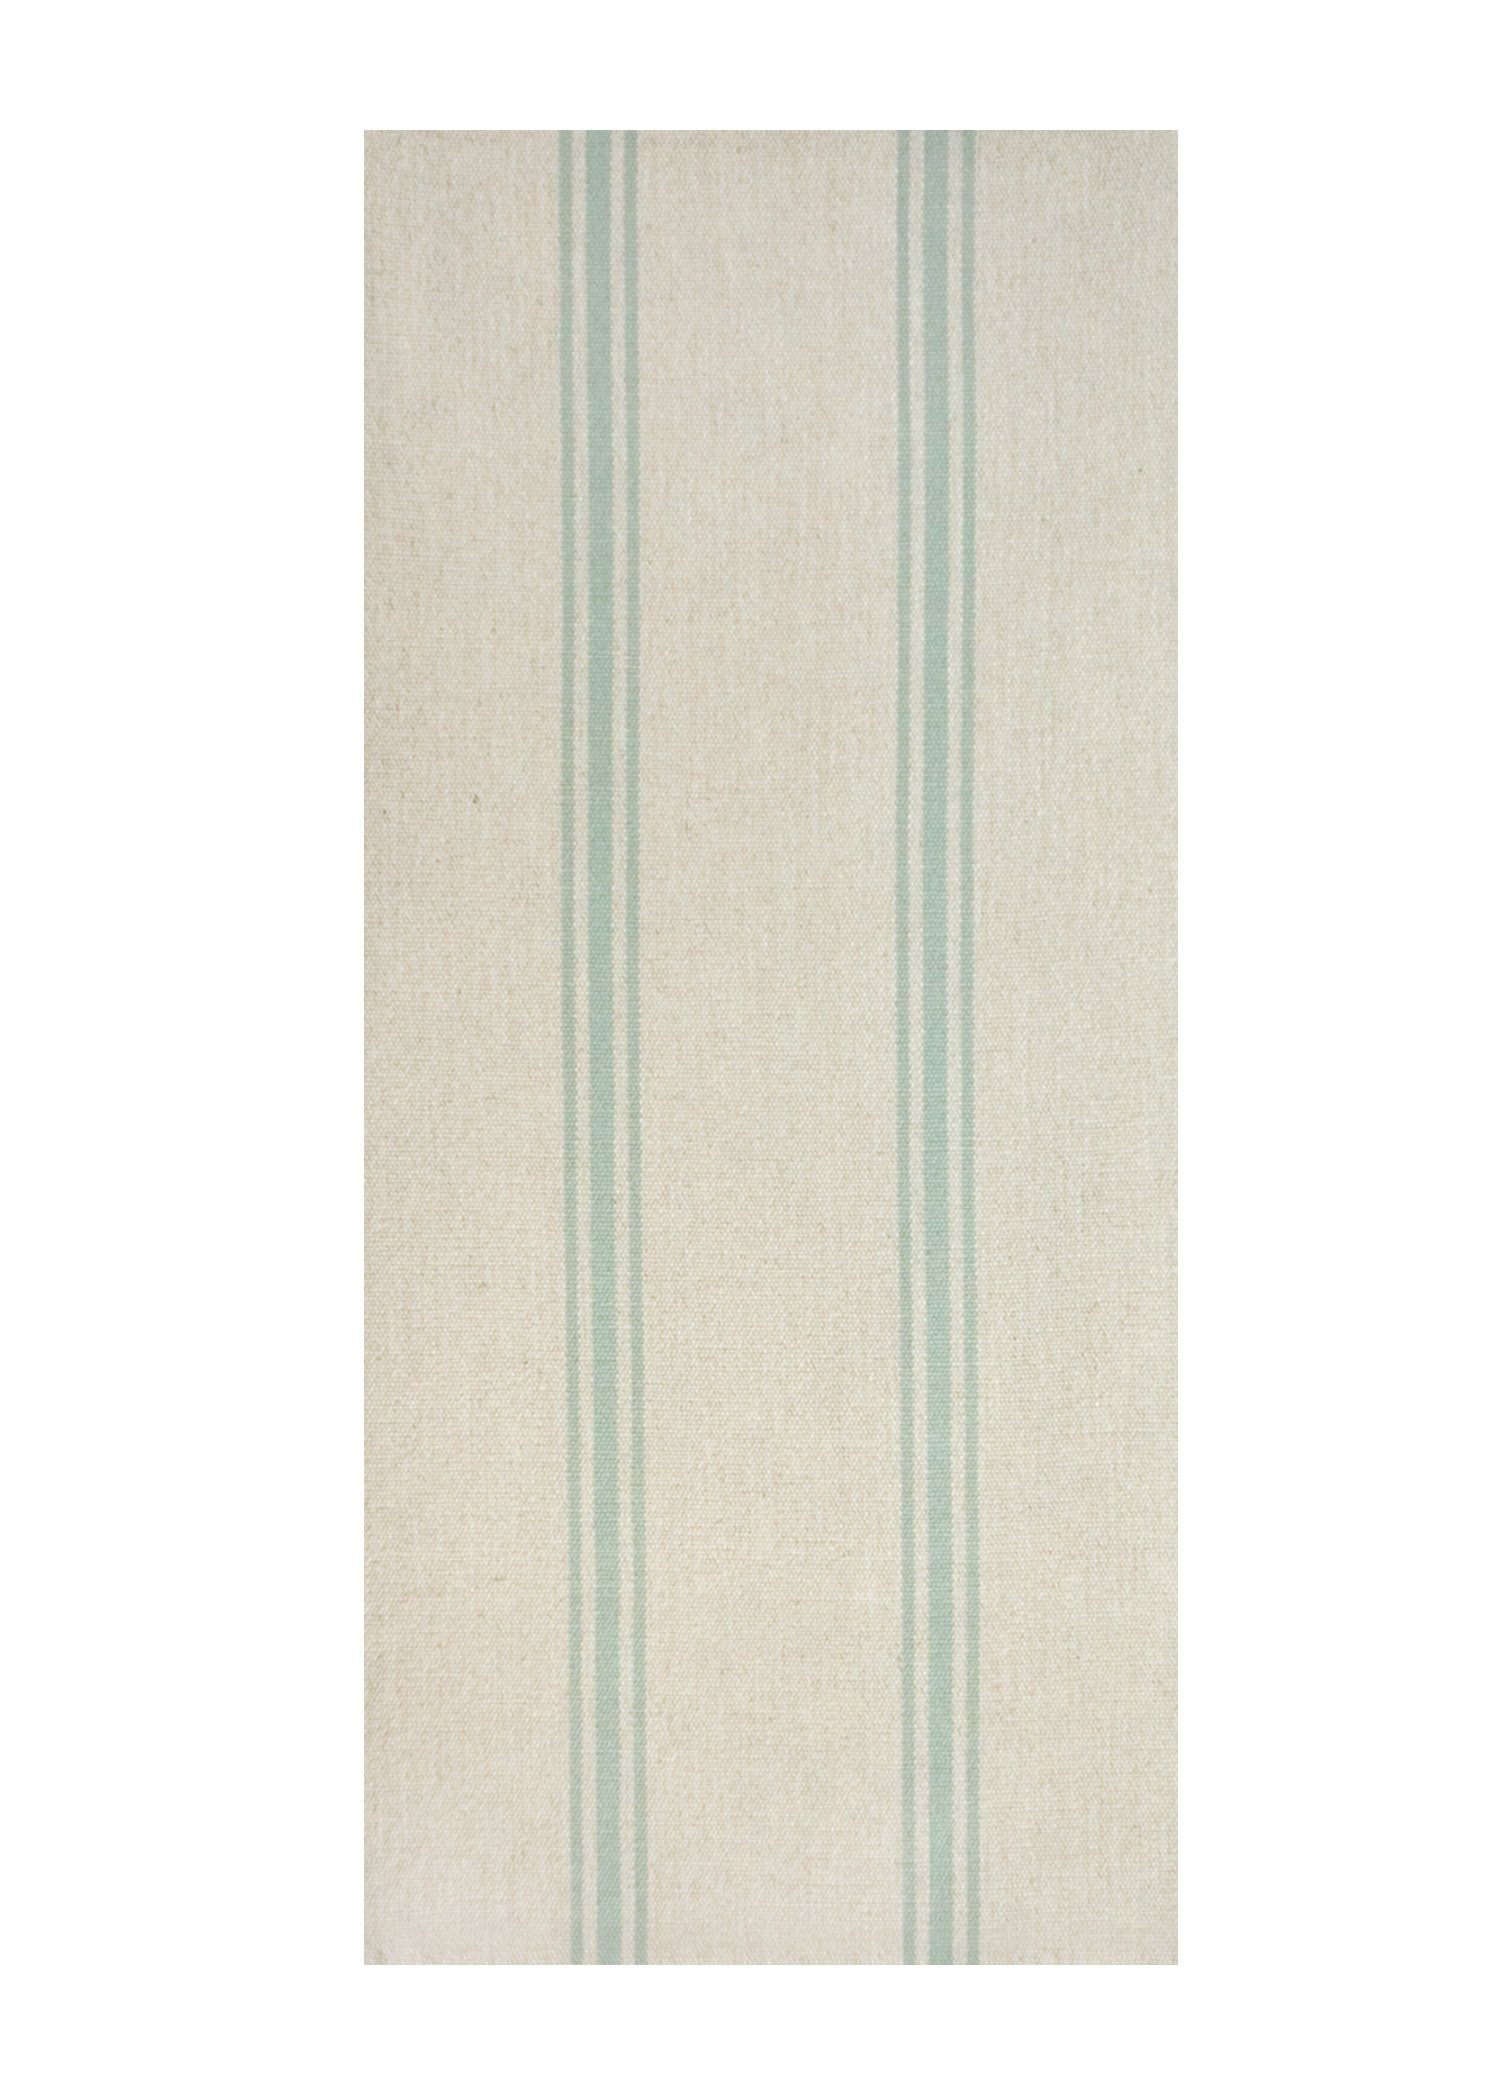 Heritage Lace Spa Dory Bay Table Runner, 16''x36''